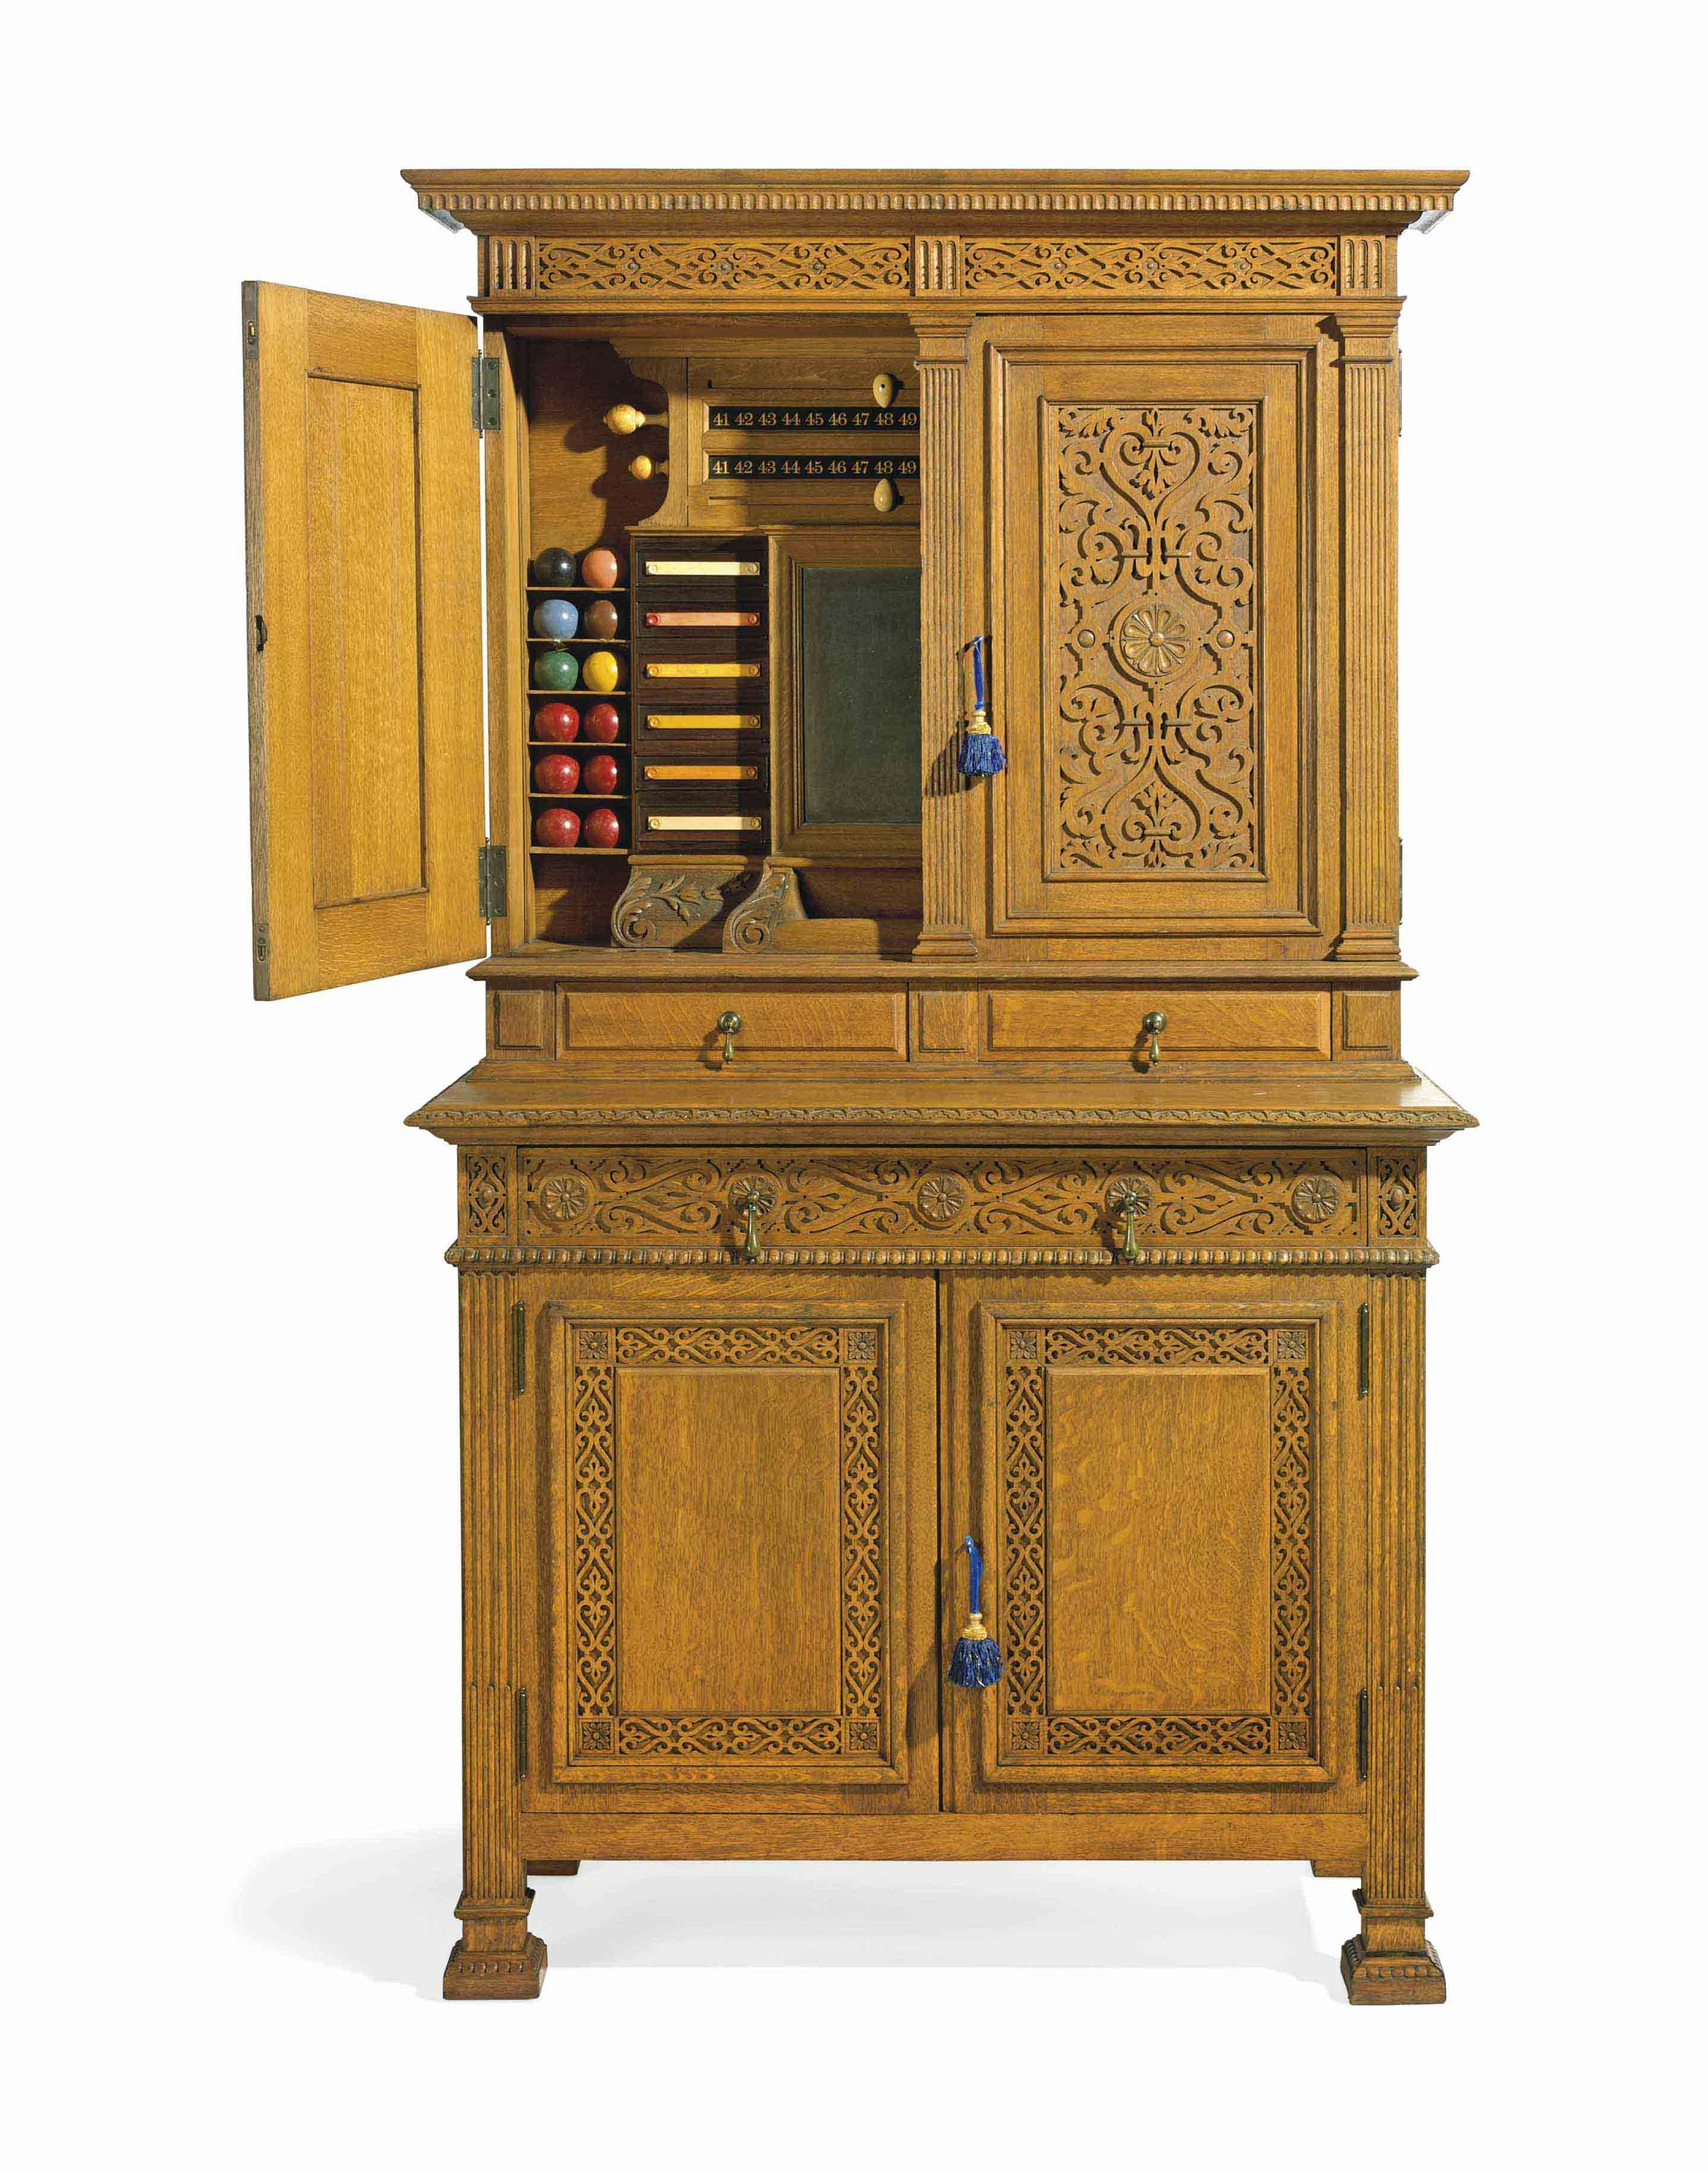 AN ELIZABETHAN REVIVAL OAK AND IVORY INLAID BILLIARDS CABINET